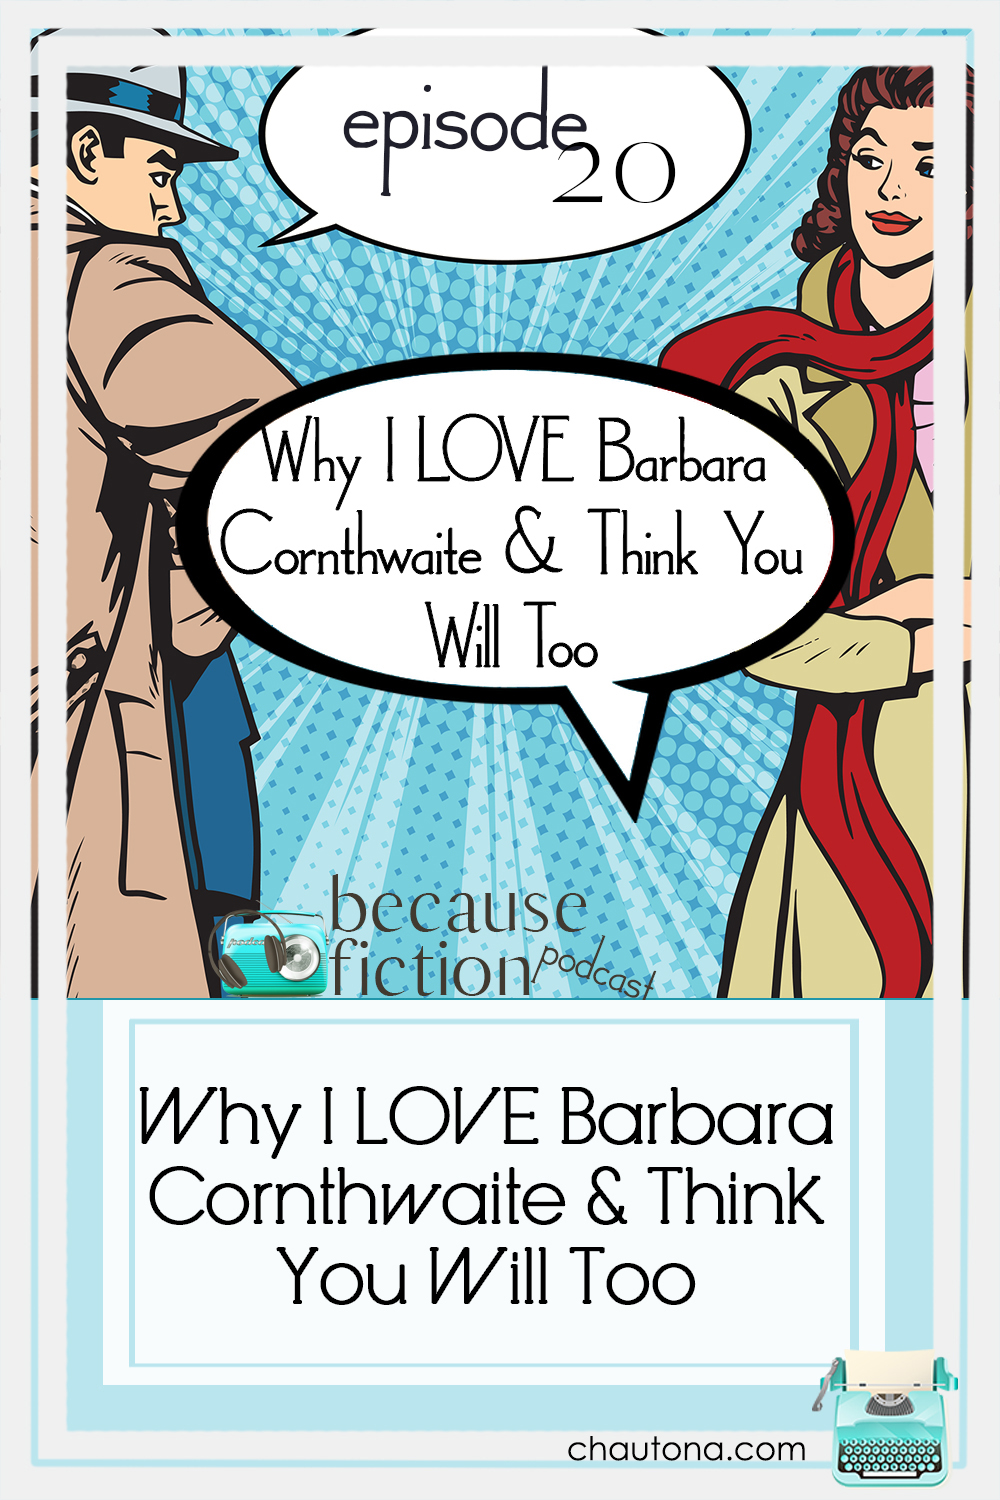 I first fell in love with Barbara Cornthwaite's historical and Austen-inspired books, but now she's becoming one of my favorite cozy mystery authors! via @chautonahavig